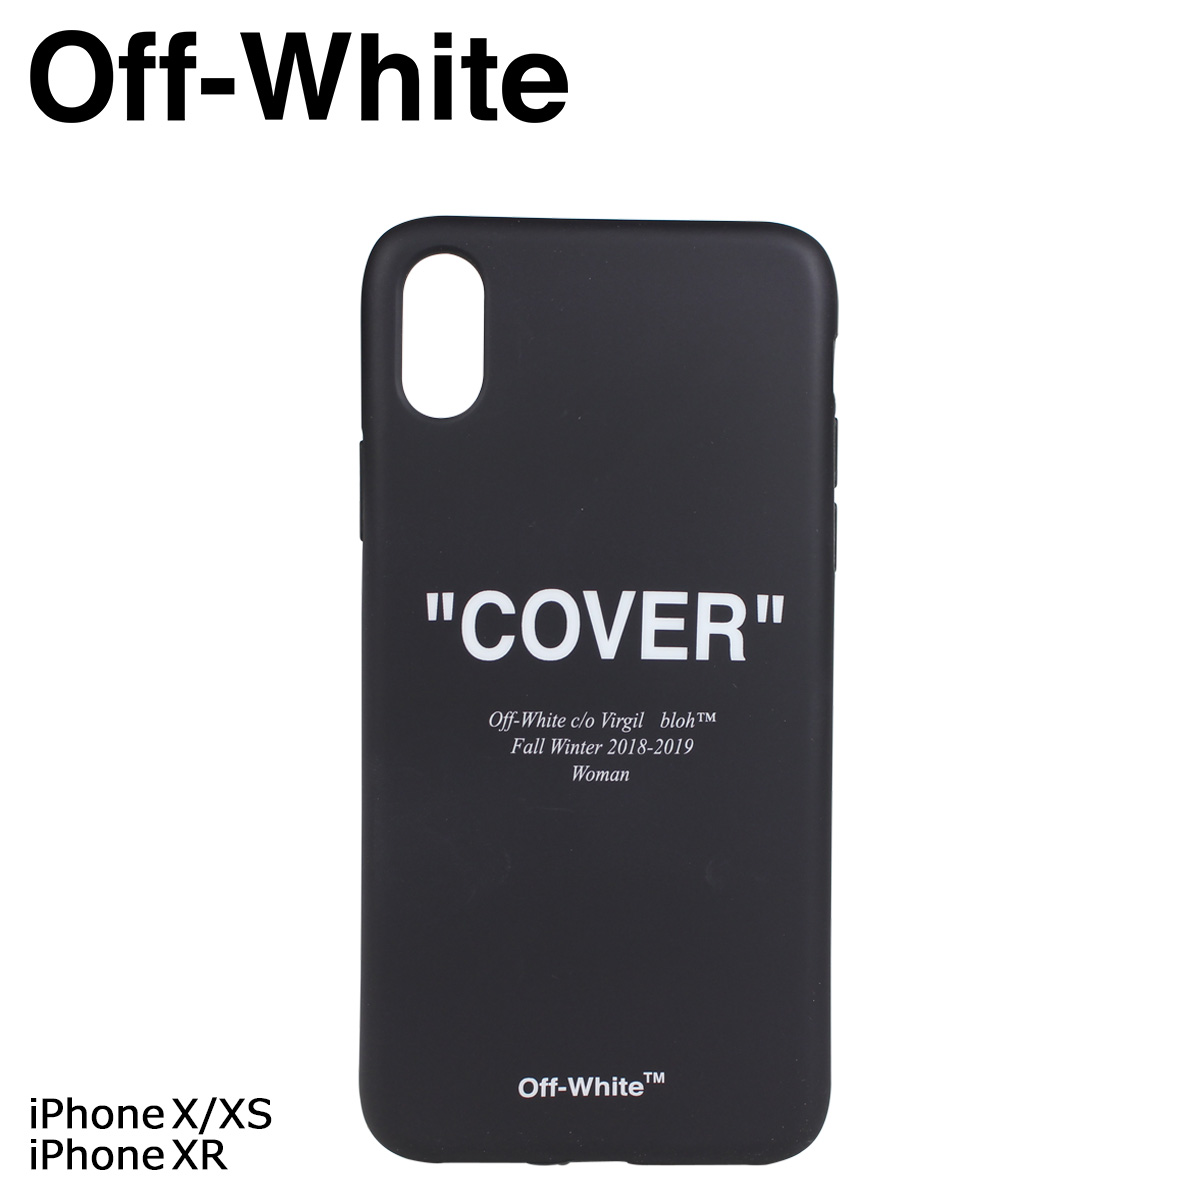 the best attitude 57240 d5bc3 Off-white Off-white iPhoneXS X case smartphone eyephone Lady's men QUOTED  COVER black black OWPA009 29404